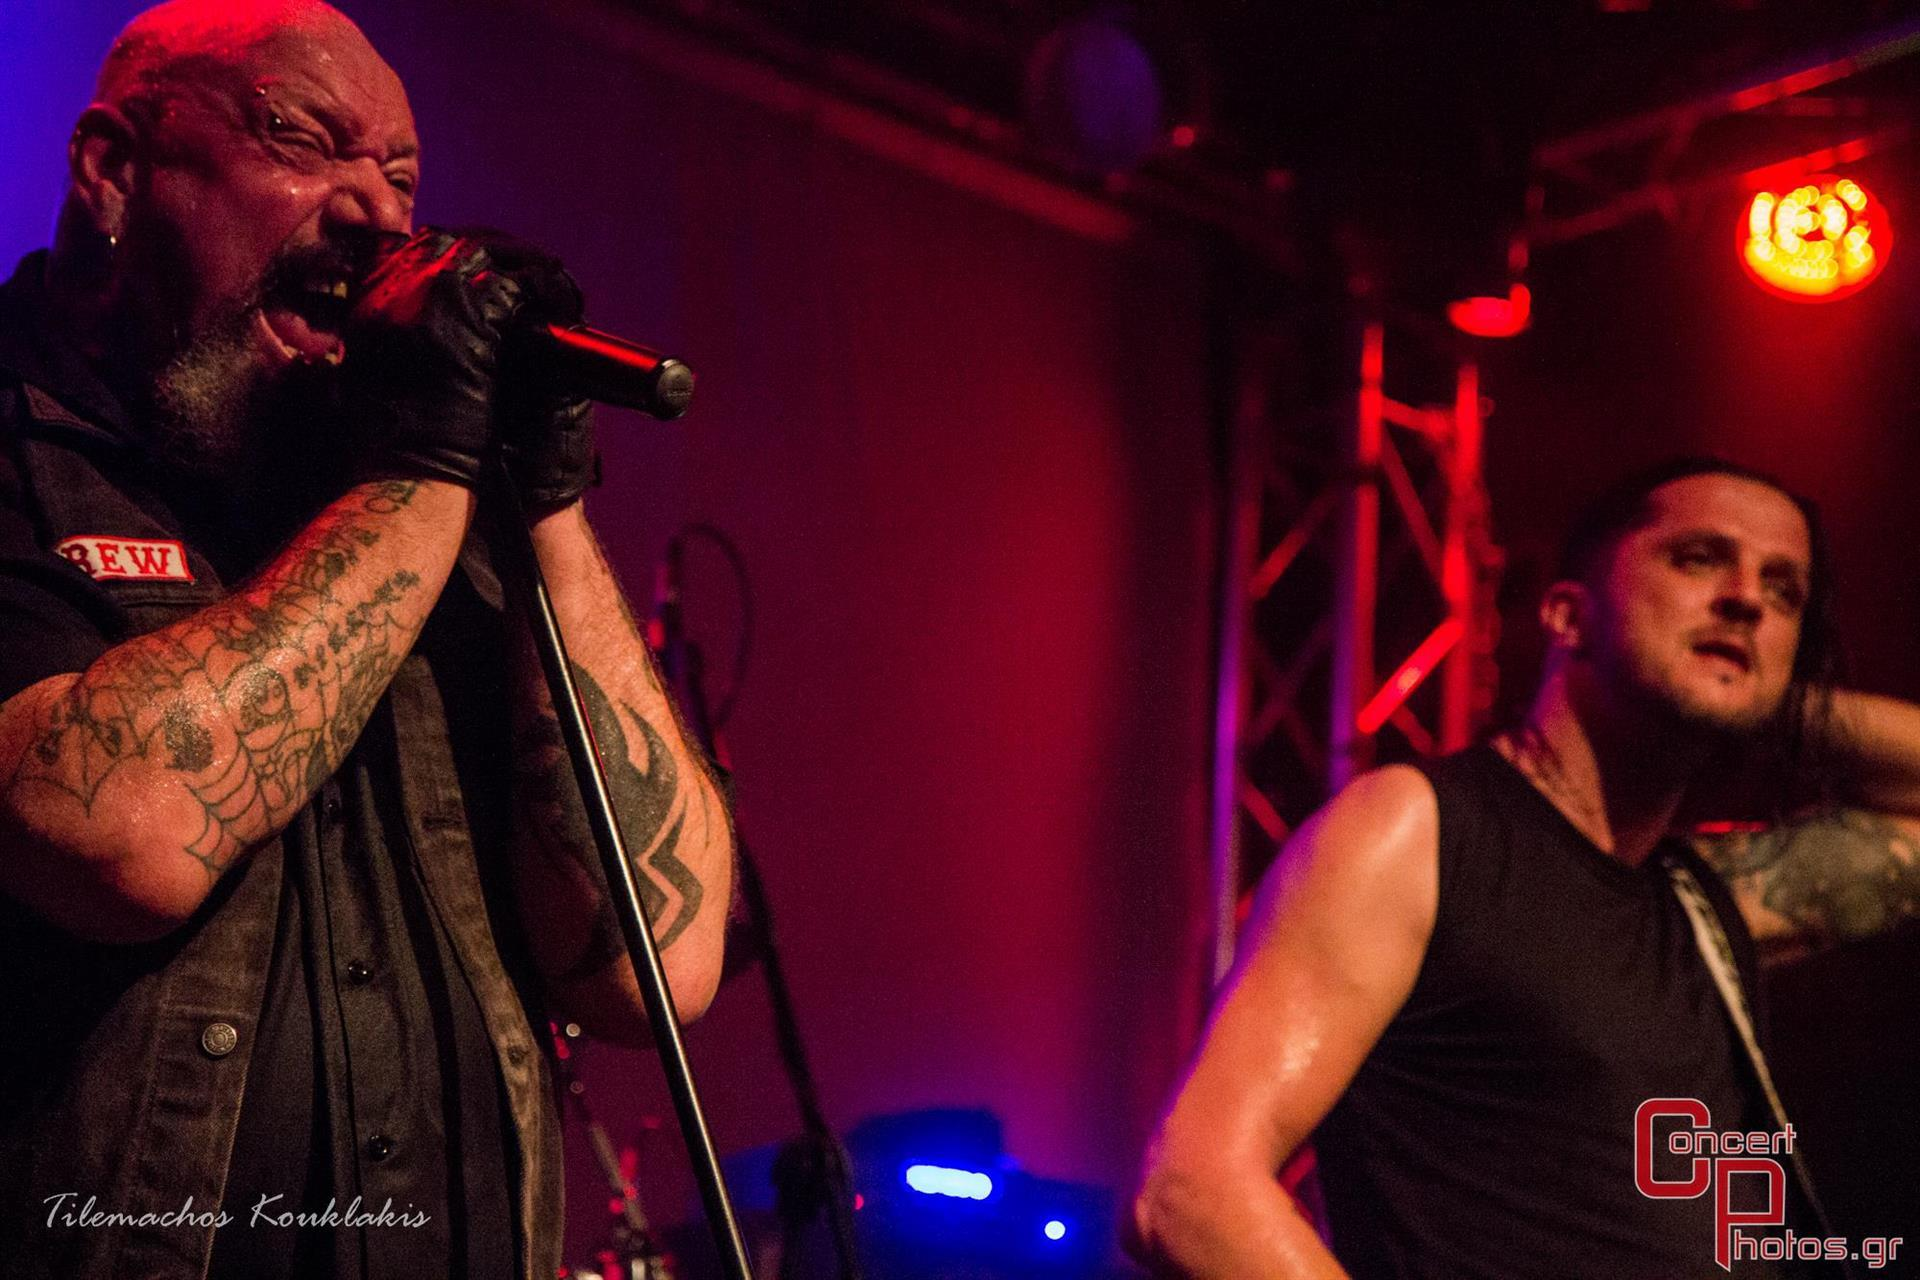 Paul Di Anno -Paul Di Anno  photographer:  - IMG_9436